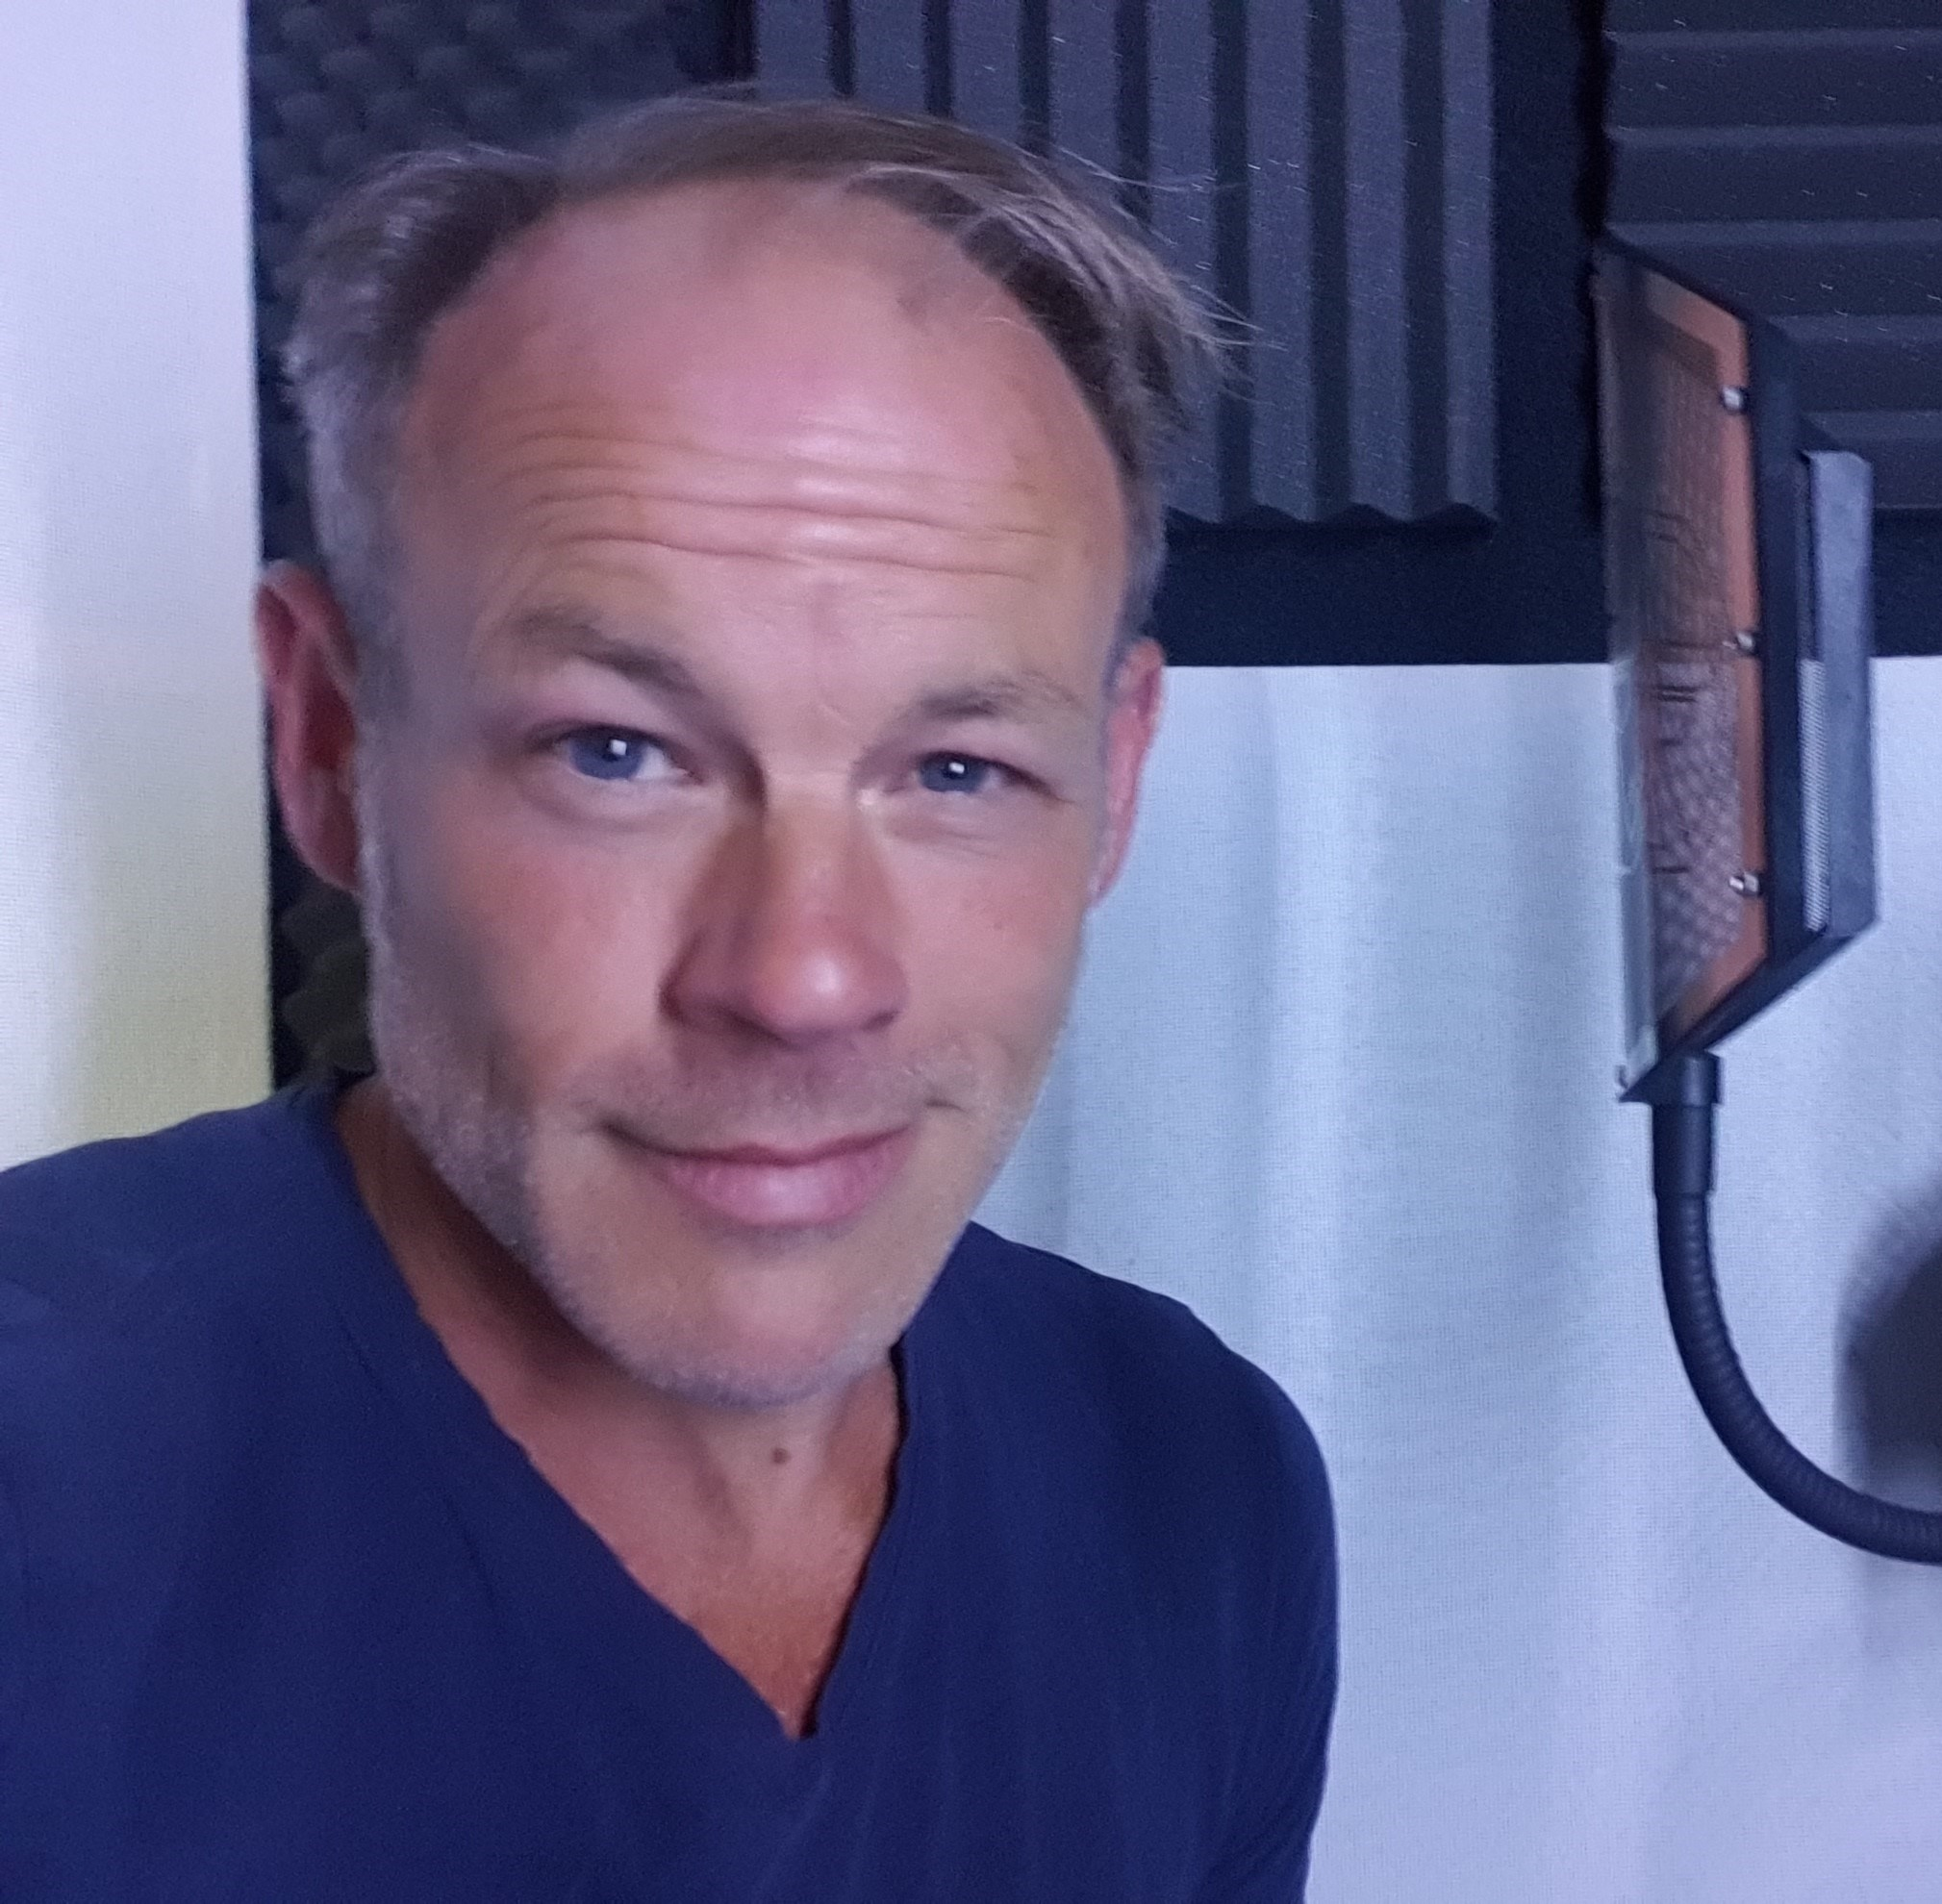 Photograph of male English voiceover artist Anthony Hewson in the recording booth